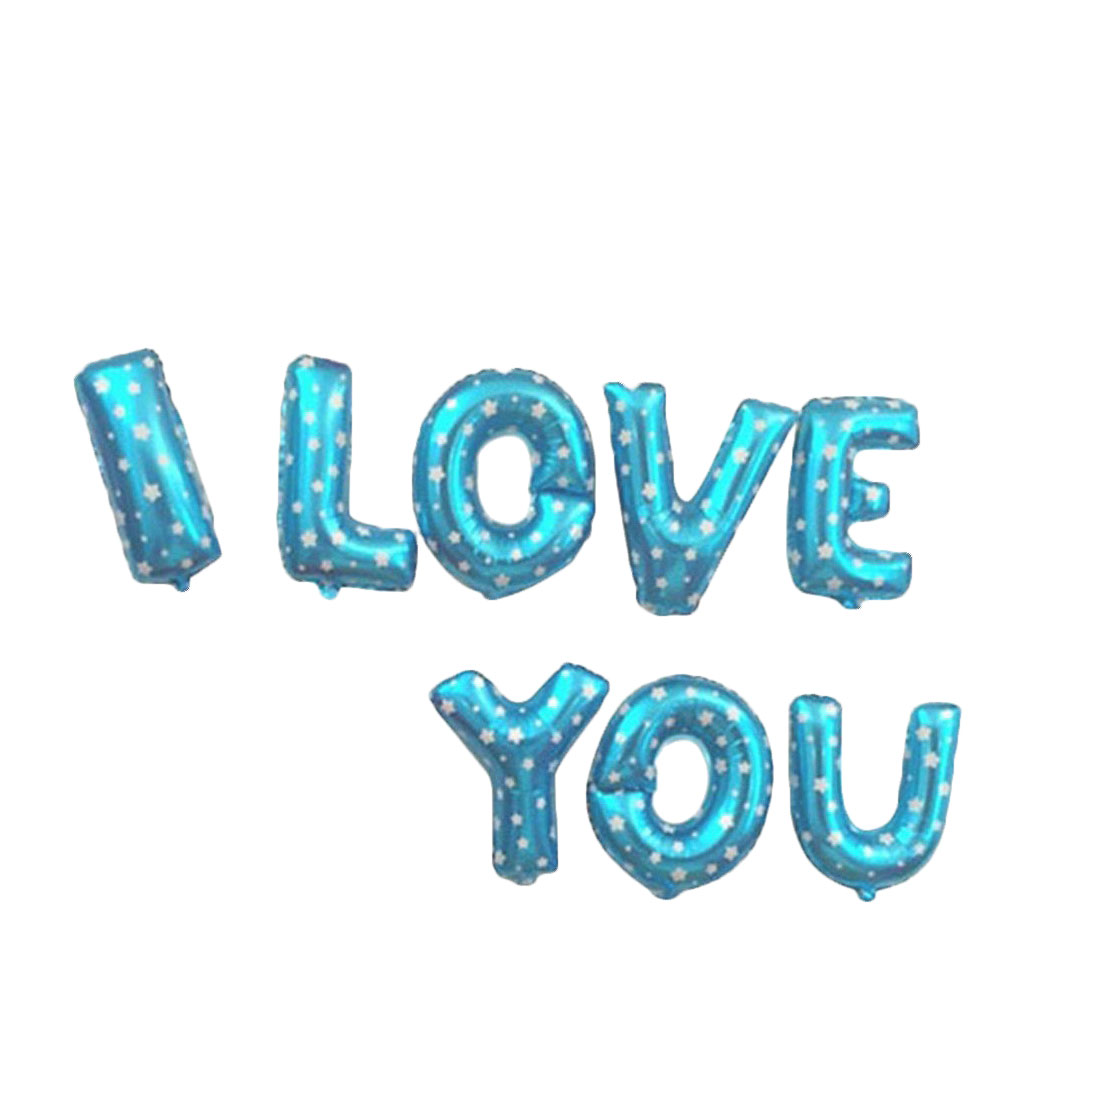 Unique Bargains Foil I LOVE YOU Shape Star Pattern Balloon Wedding Decor Blue 8 in 1